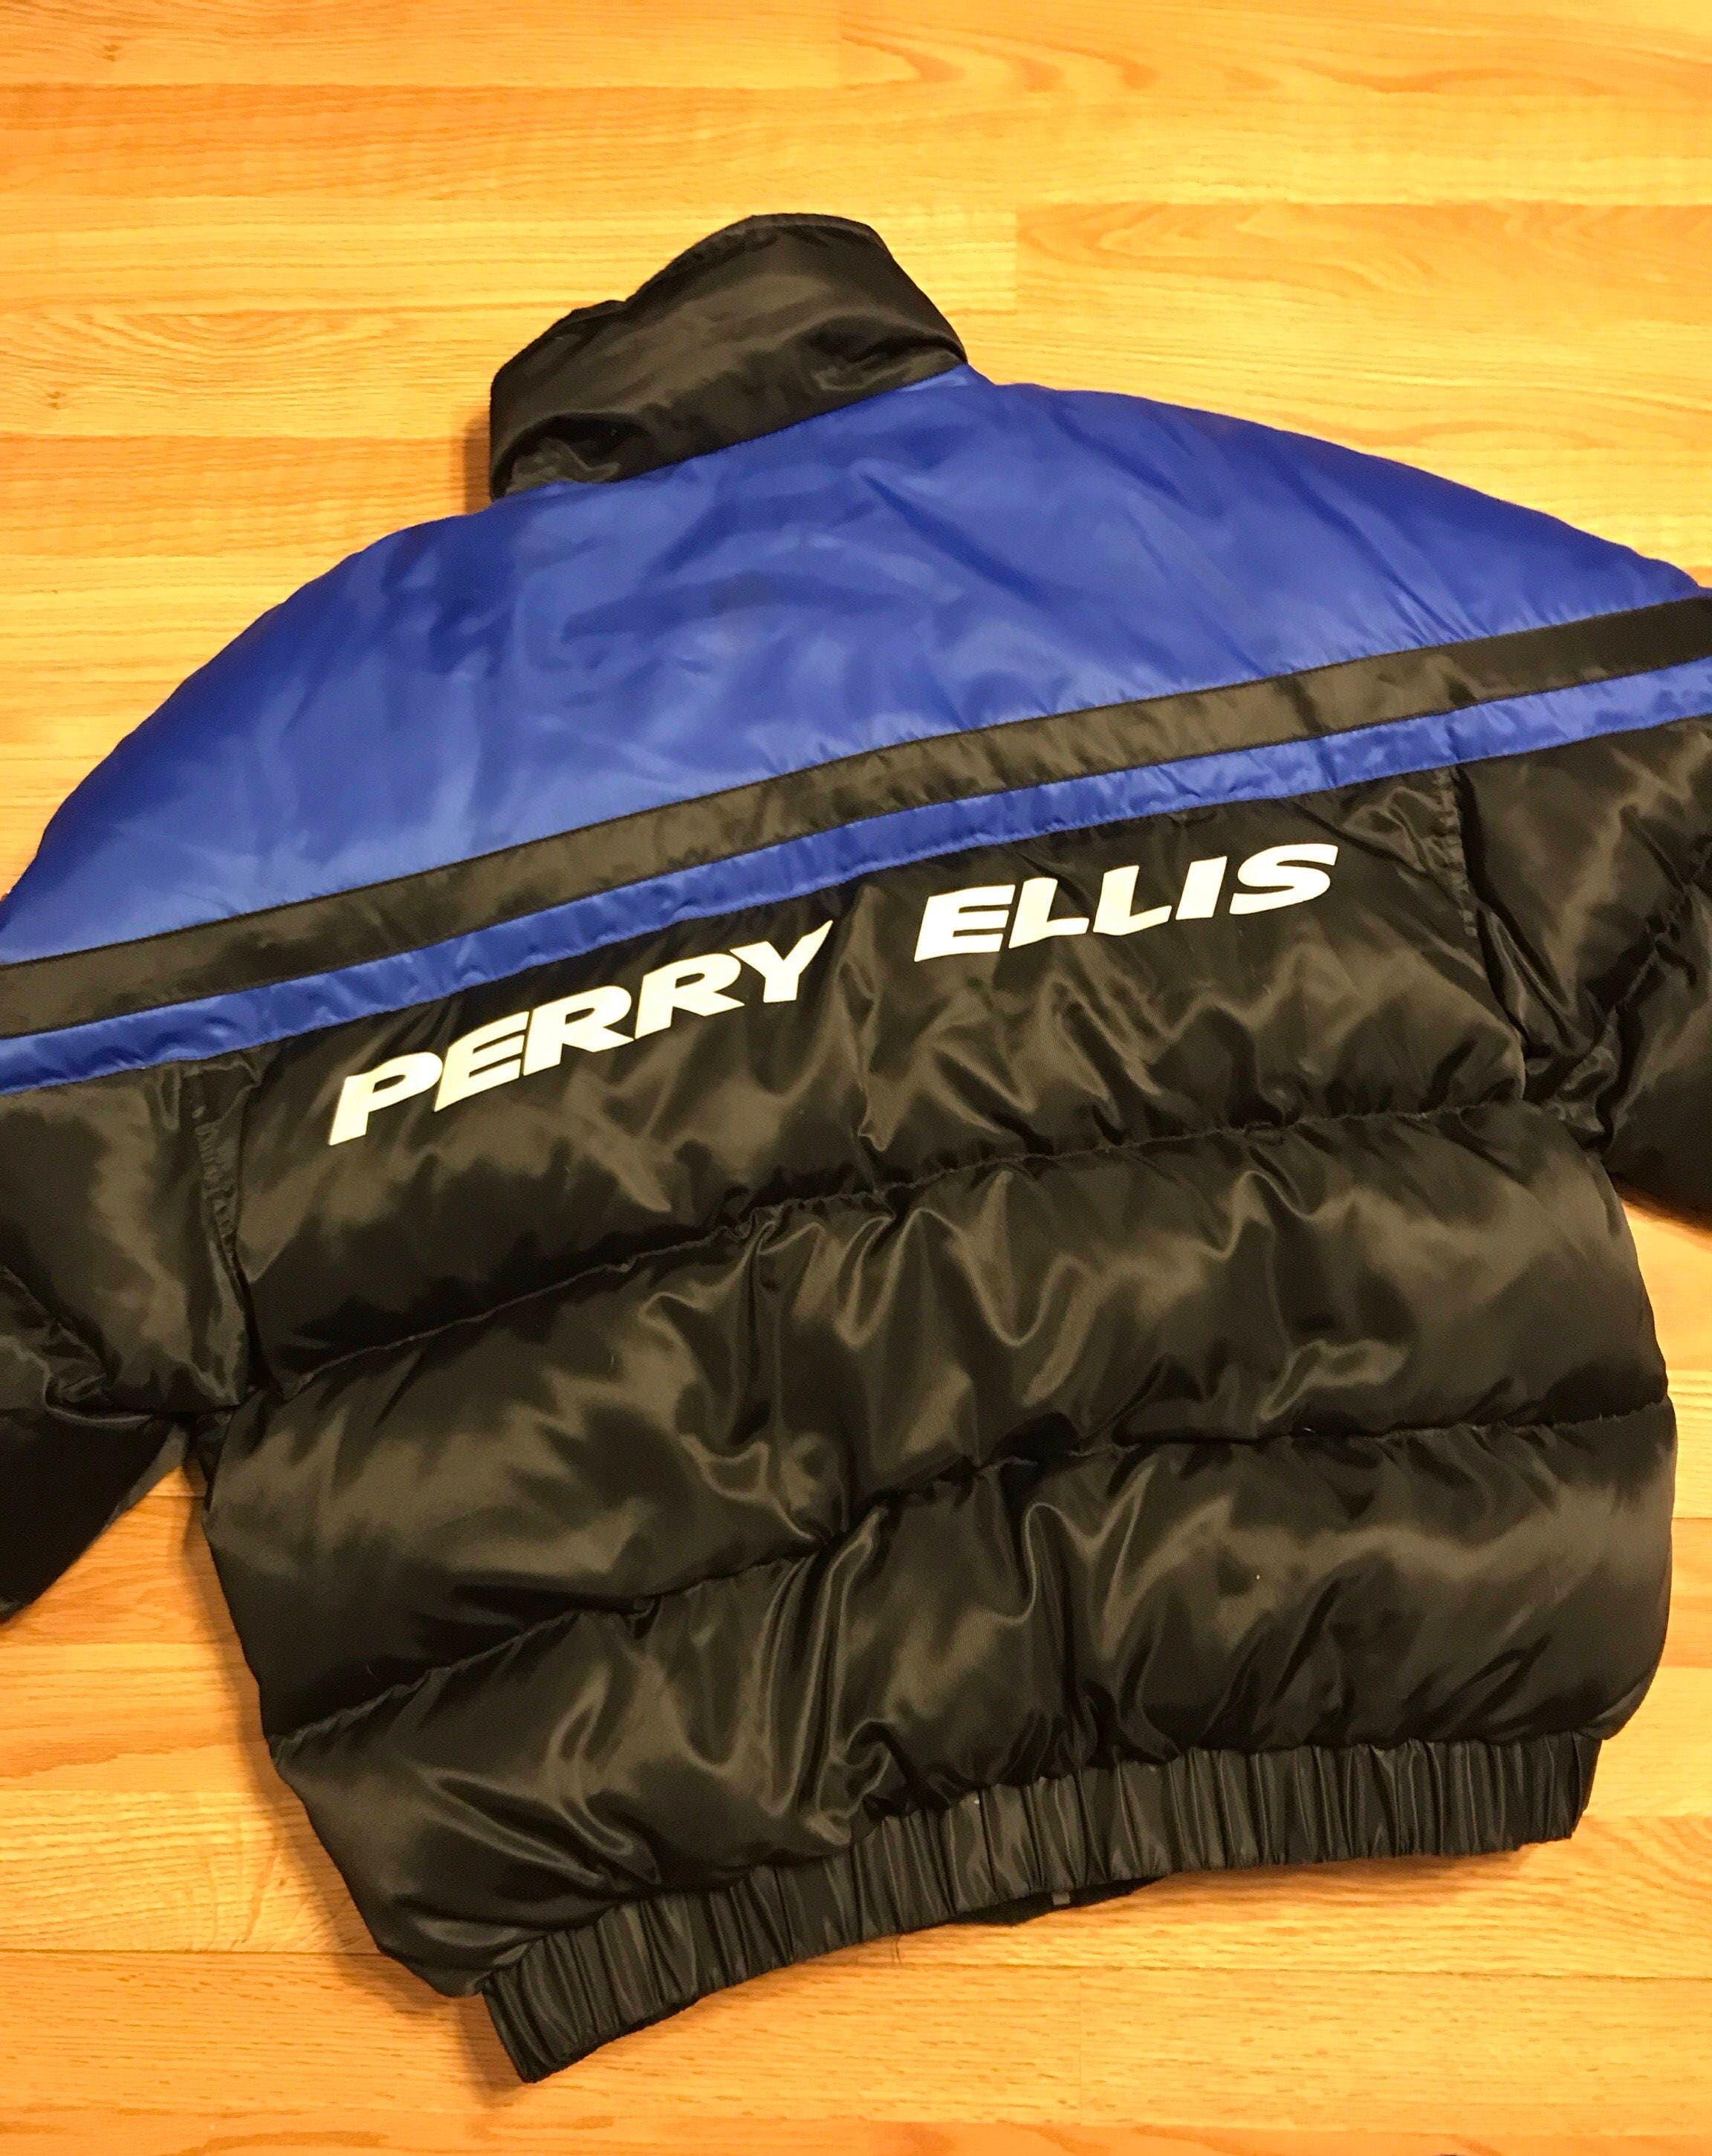 5261ac89bf Vintage perry ellis down puffer jacket size large